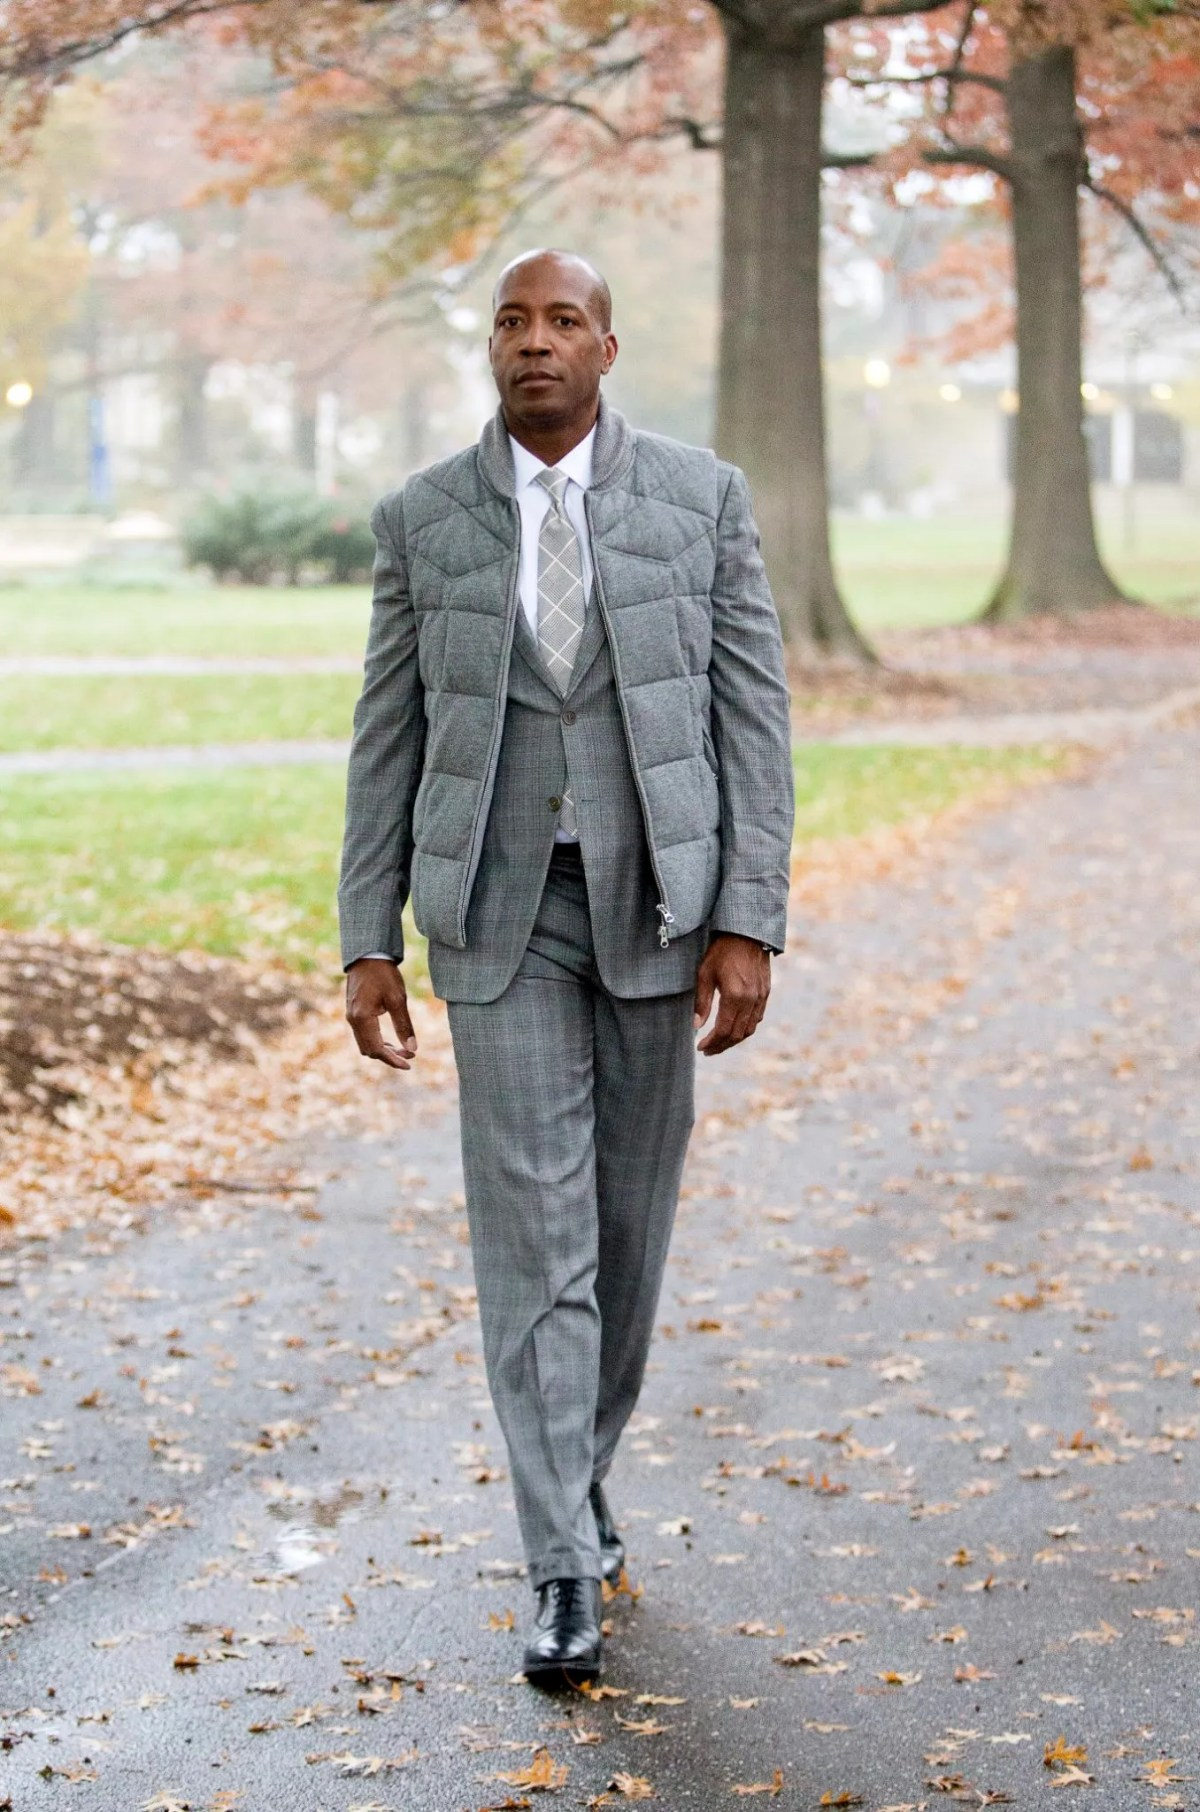 shoes to wear with a gray suit - light gray and lace ups